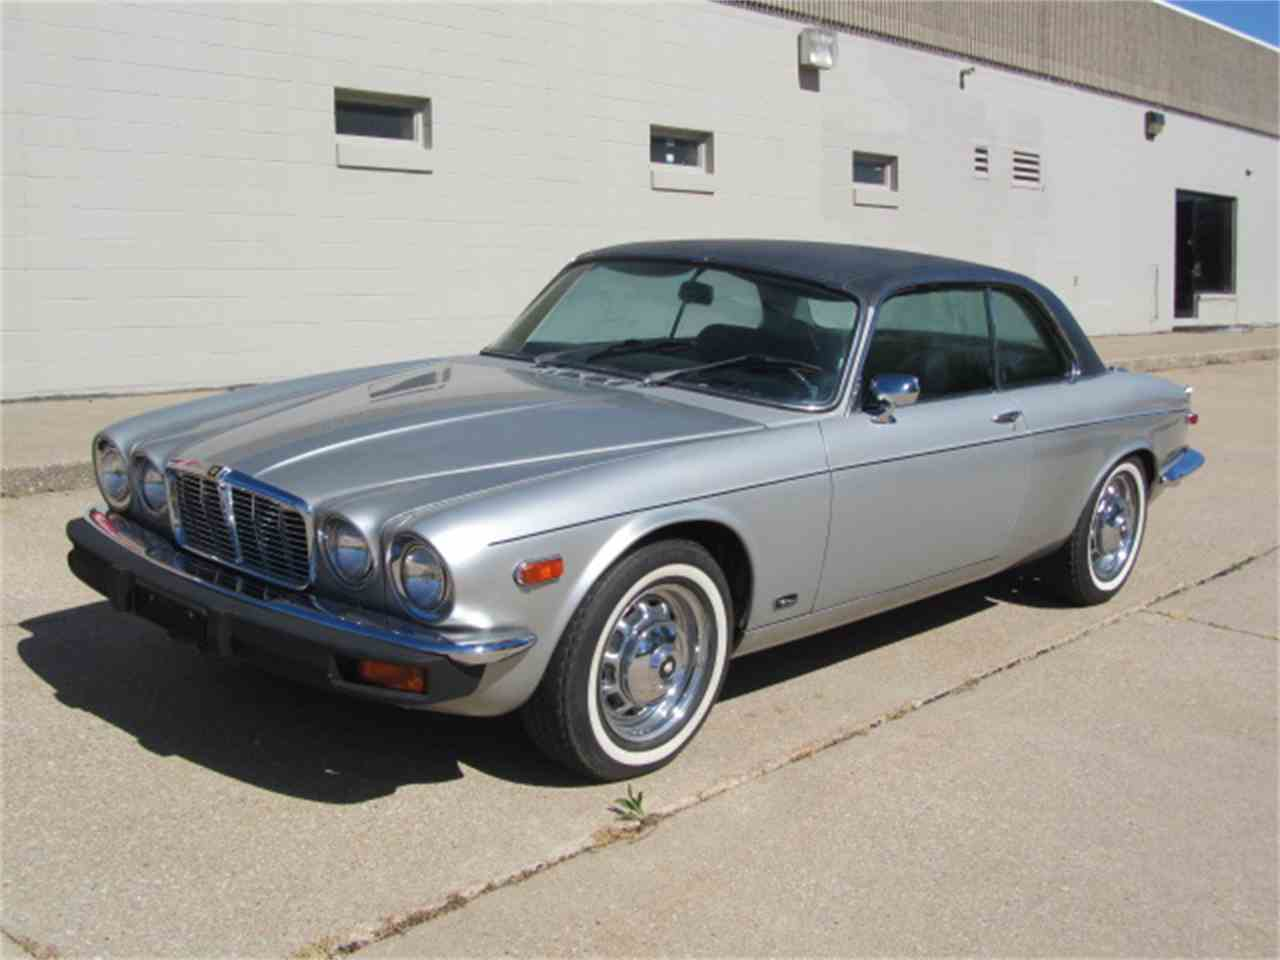 photo c moment is xj jaguar for autoweek coupe xjc ready in its sale spotlight a auctions the article